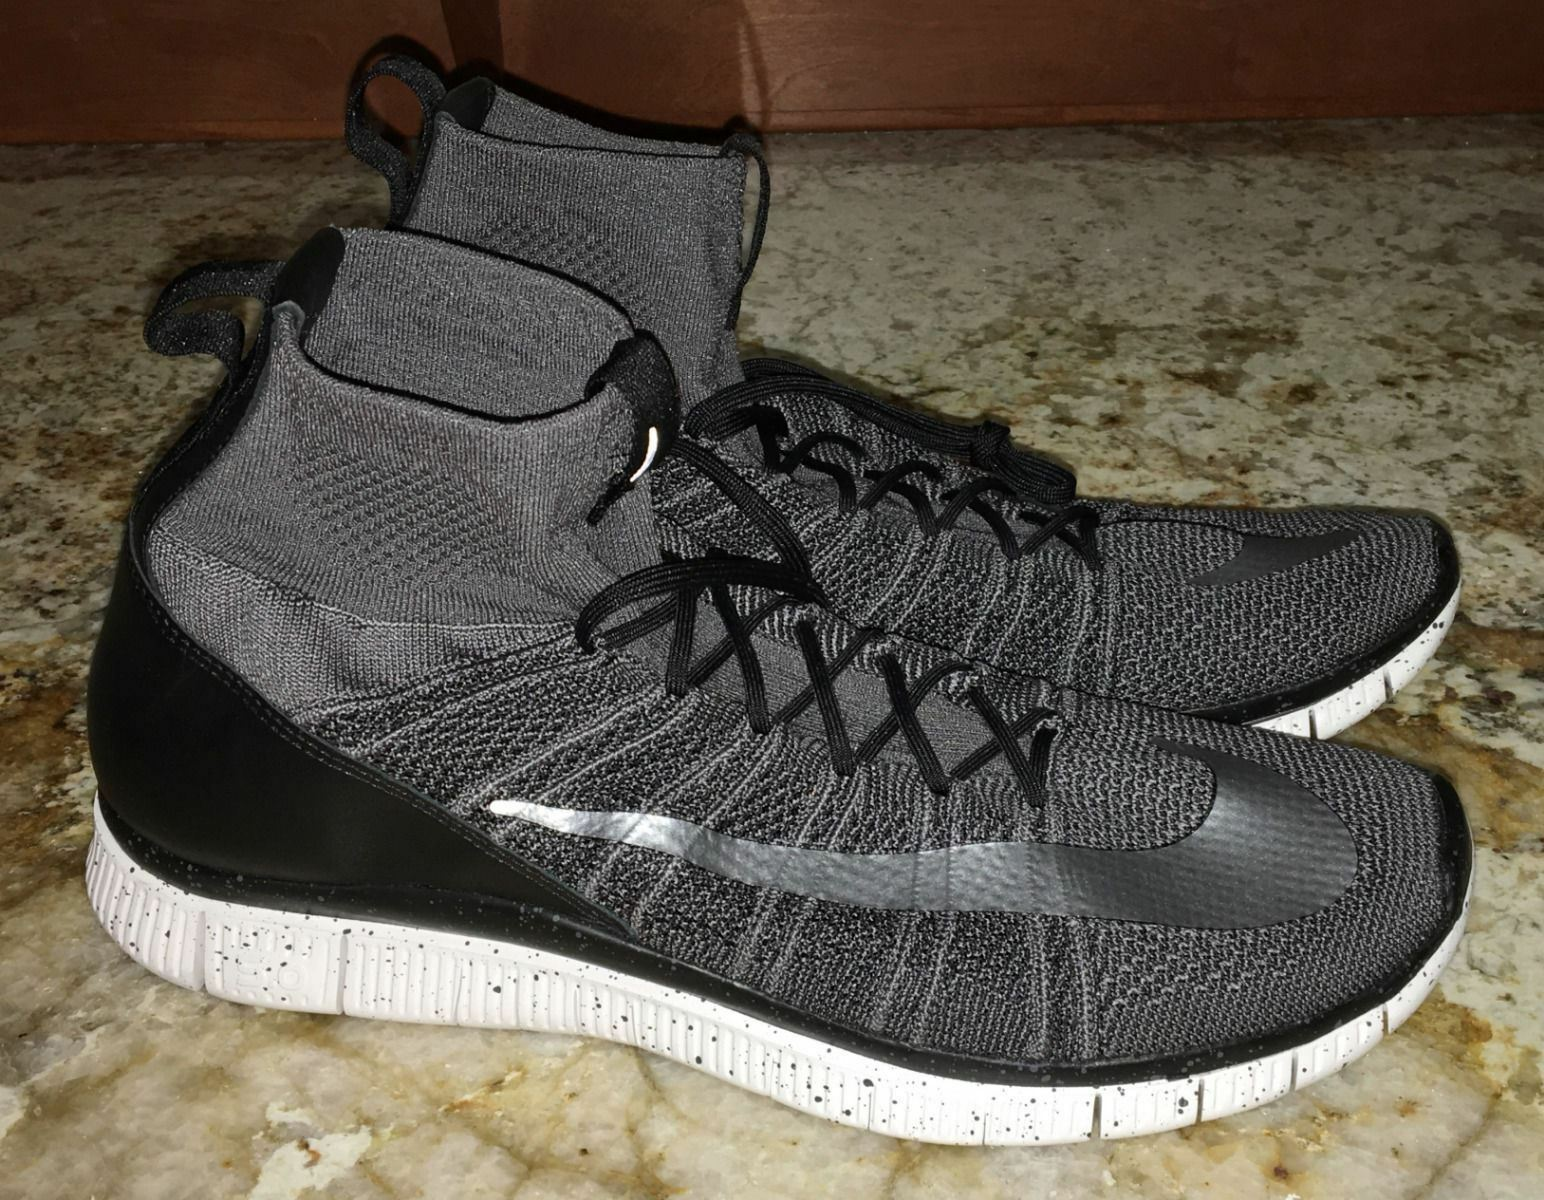 NIKE Free Flyknit Mercurial Superfly Dark Grey Black Silver Shoes NEW Mens Sz 12 Brand discount